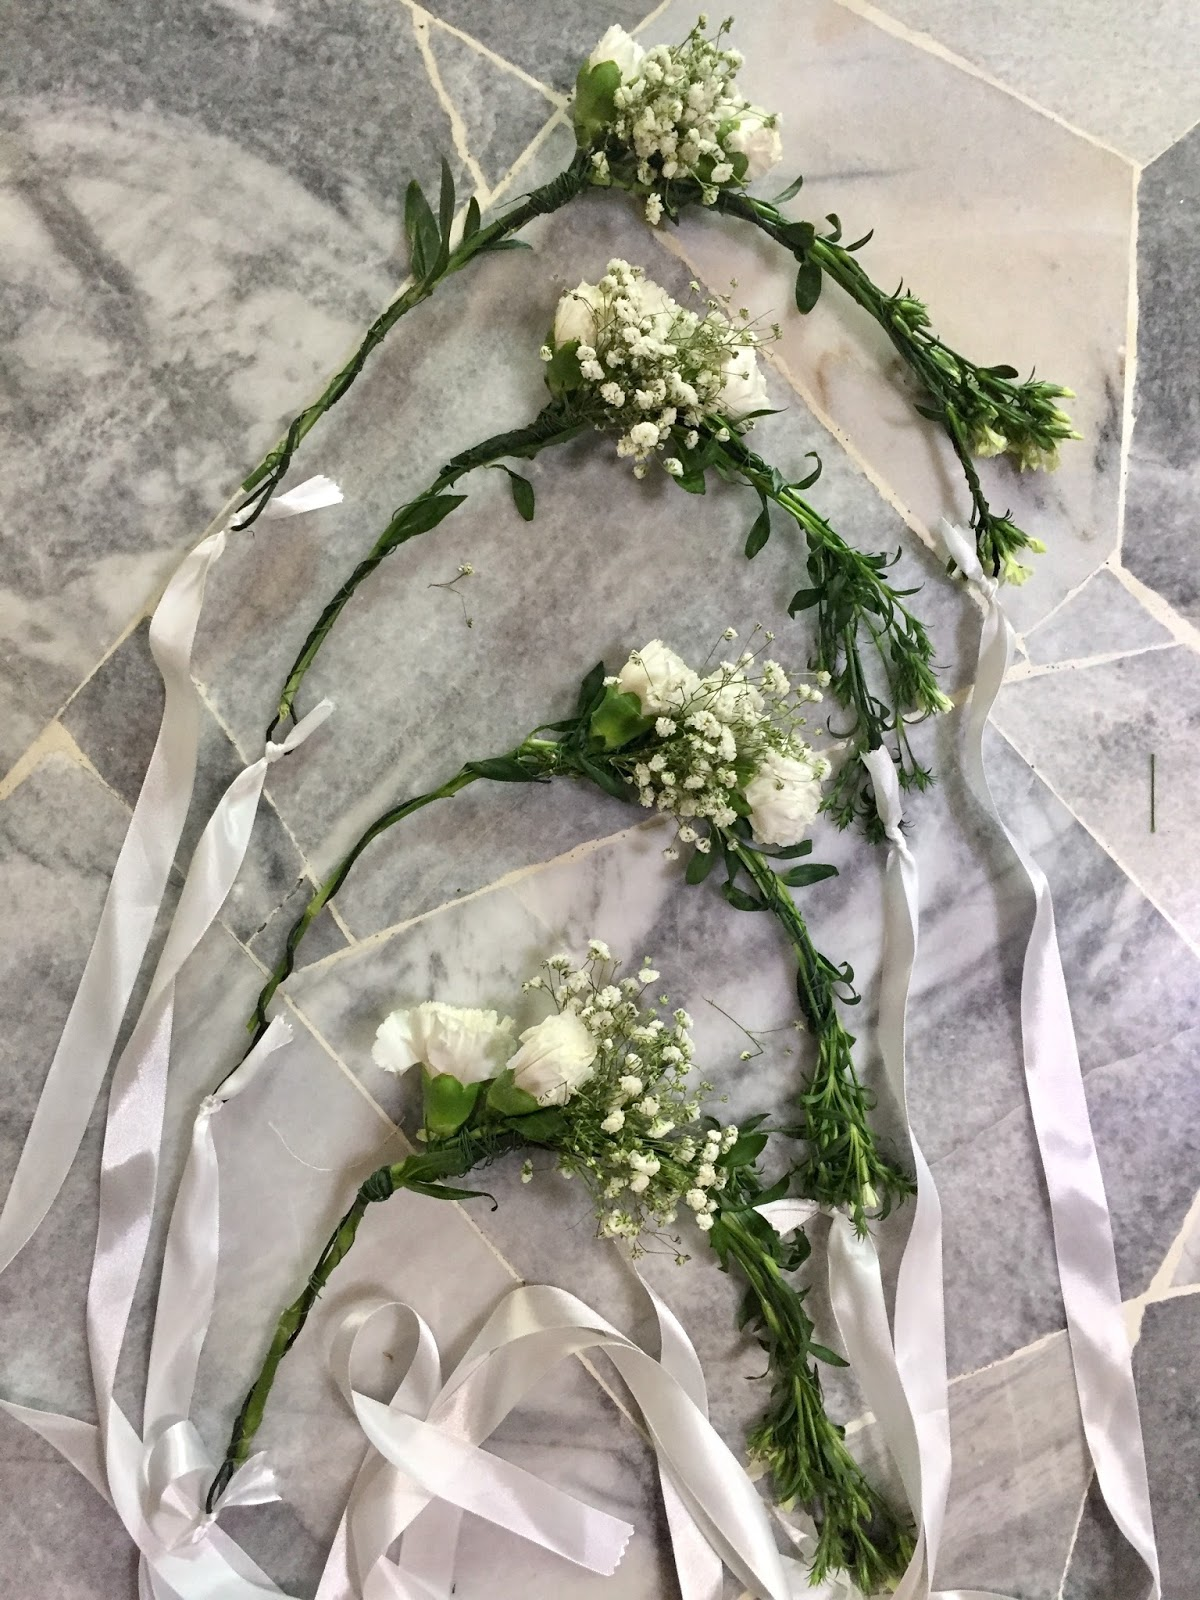 How to make your own fresh flower crown nadia izzaty for nazlins flower crown i sewed a veil on a ribbon and tie it to the loop at the end of the crown i made a simple hand bouquet for izmirmasajfo